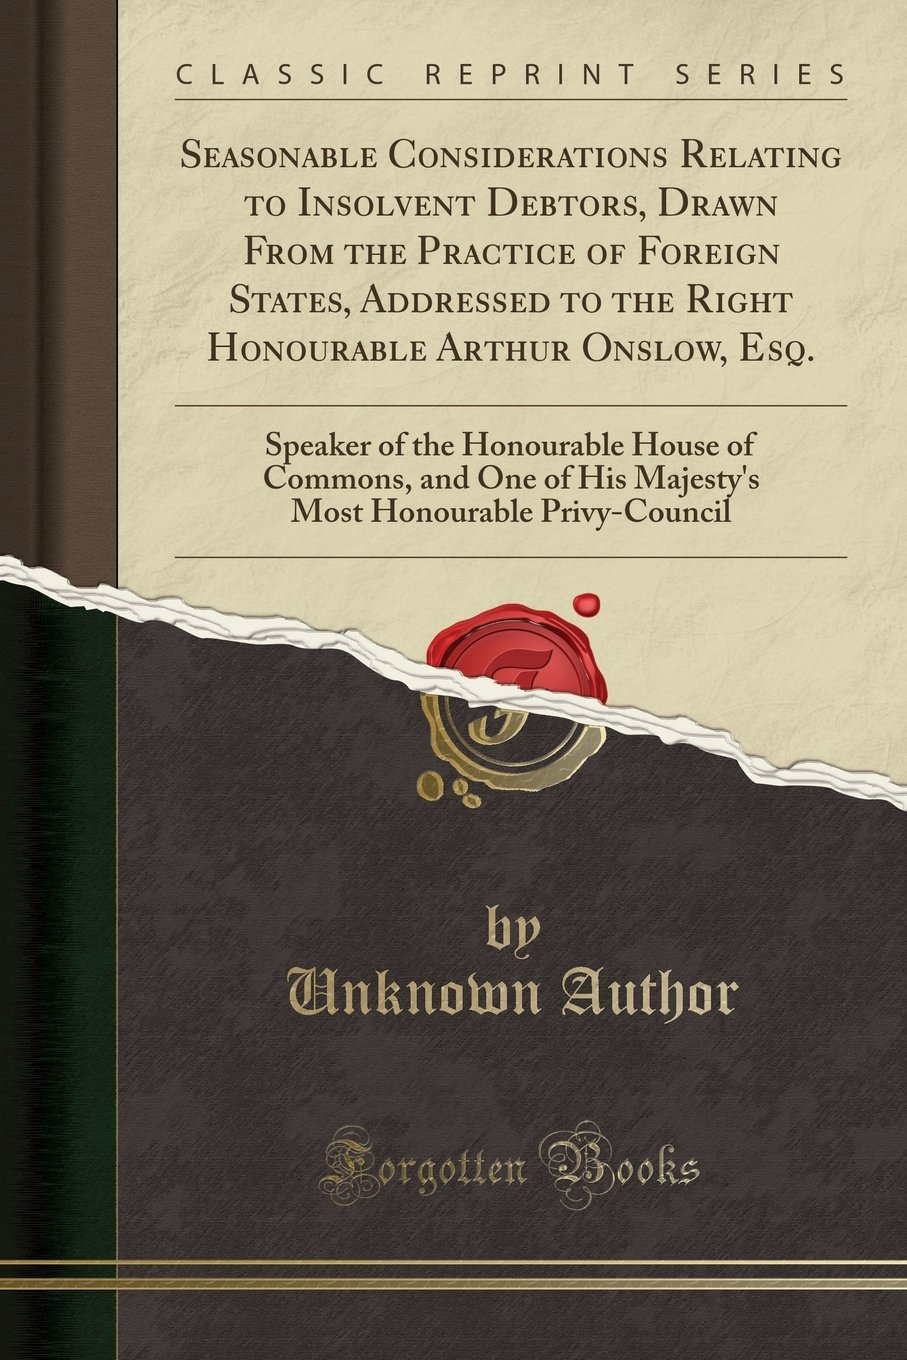 Seasonable Considerations Relating to Insolvent Debtors, Drawn From the Practice of Foreign States, Addressed to the Right Honourable Arthur Onslow, ... His Majesty's Most Honourable Privy-Council pdf